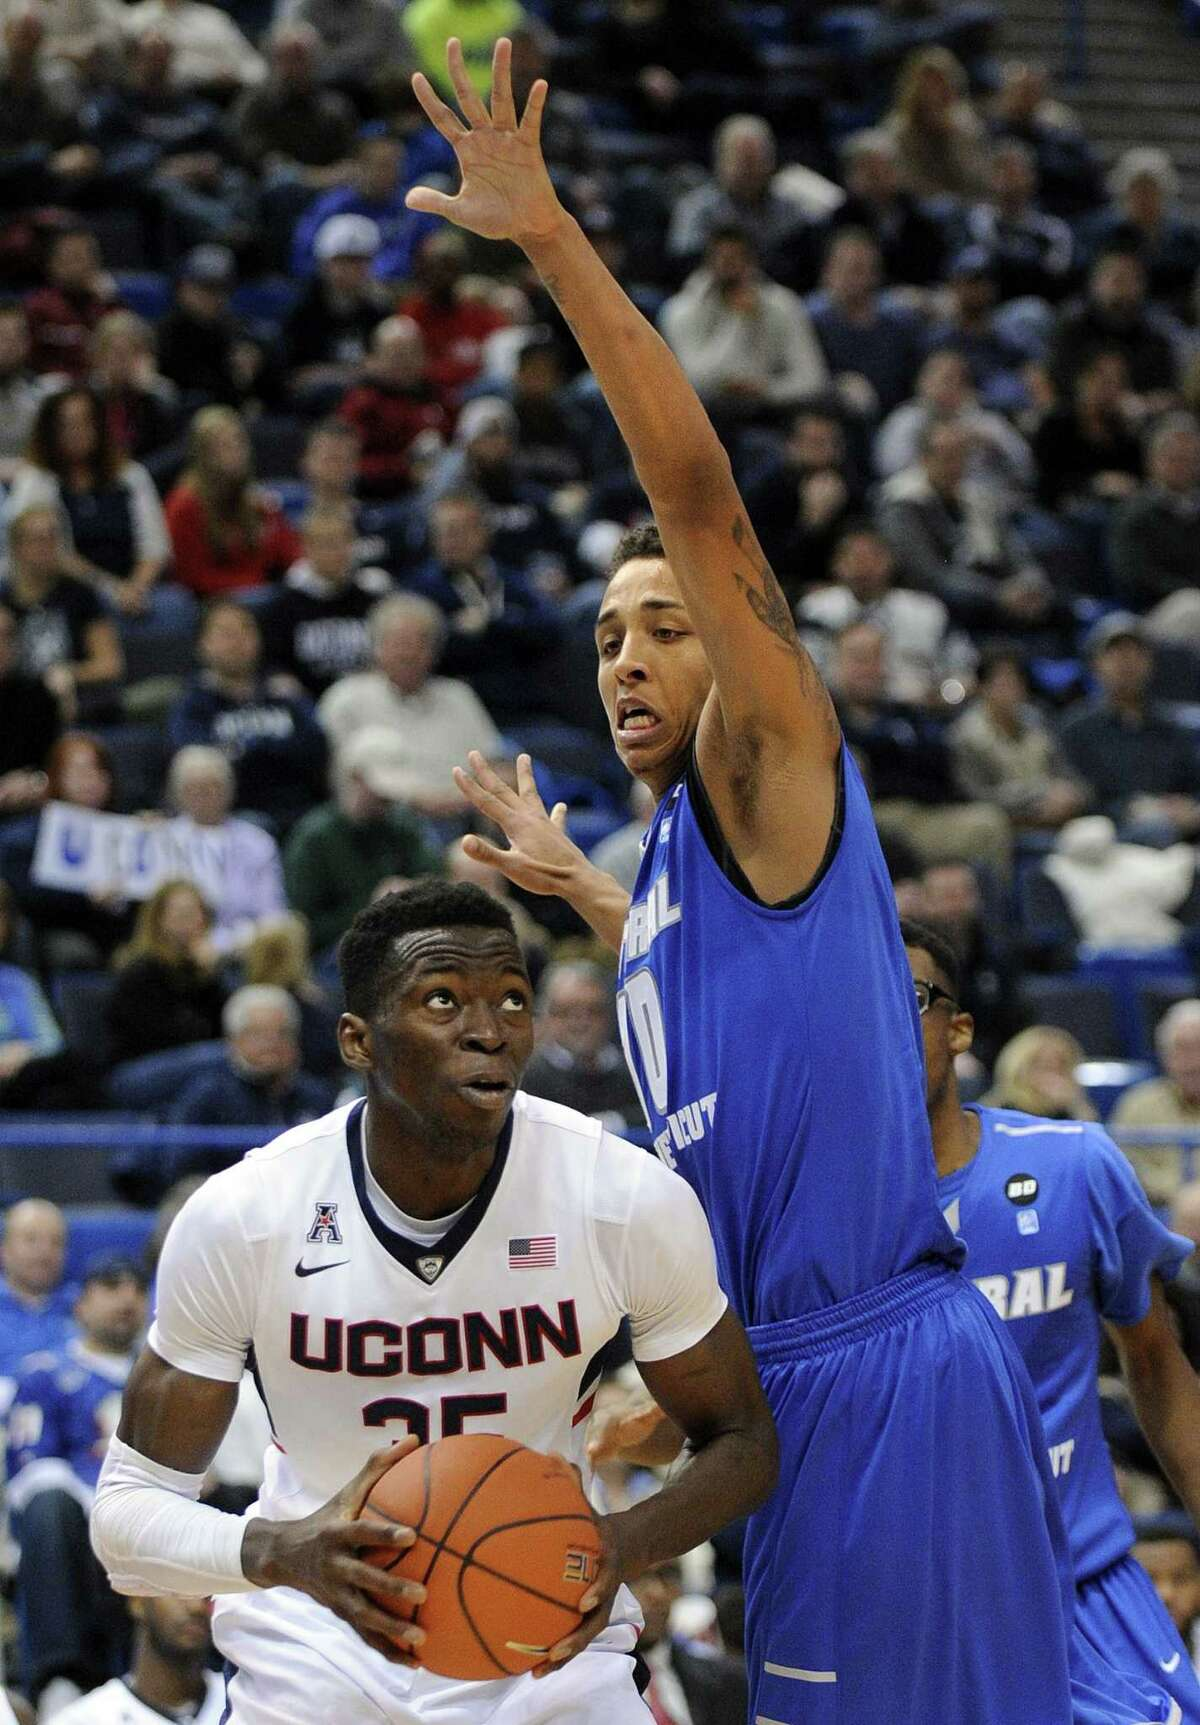 UConn's Amida Brimah had 10 rebounds in Saturday's win over Florida.